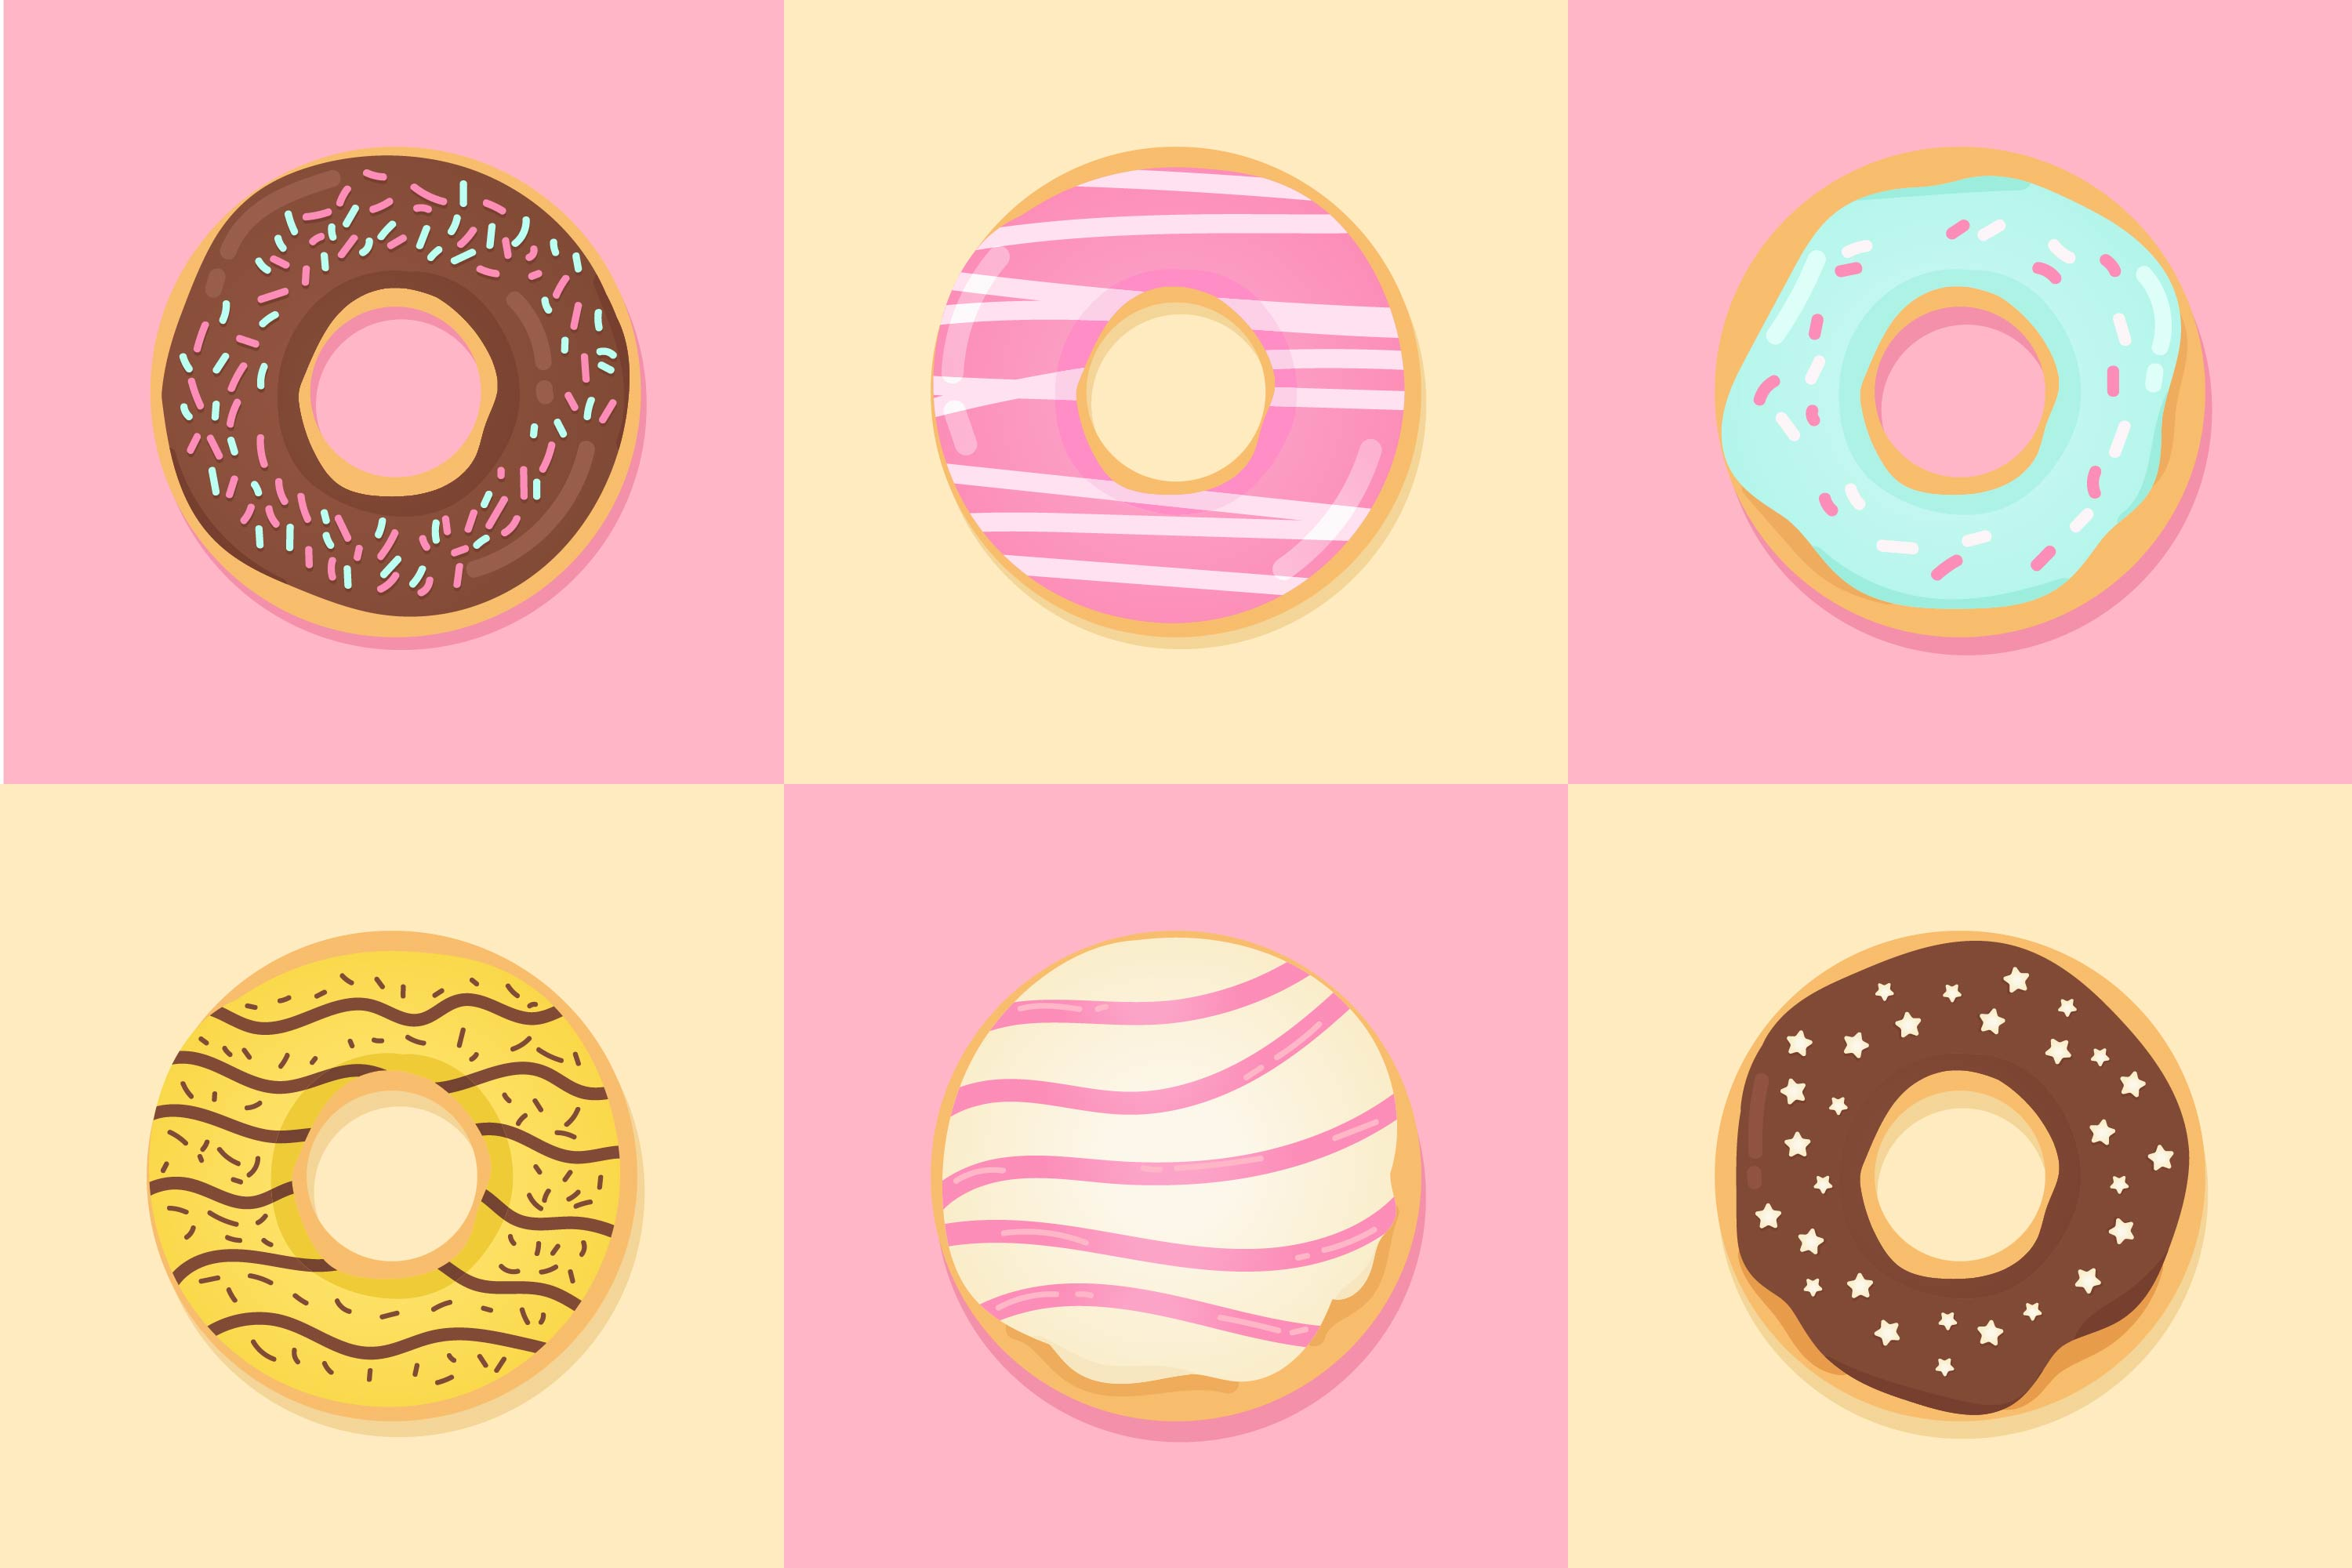 Chocolate Cute Wallpaper Cute Donut Free Vector Art 13520 Free Downloads